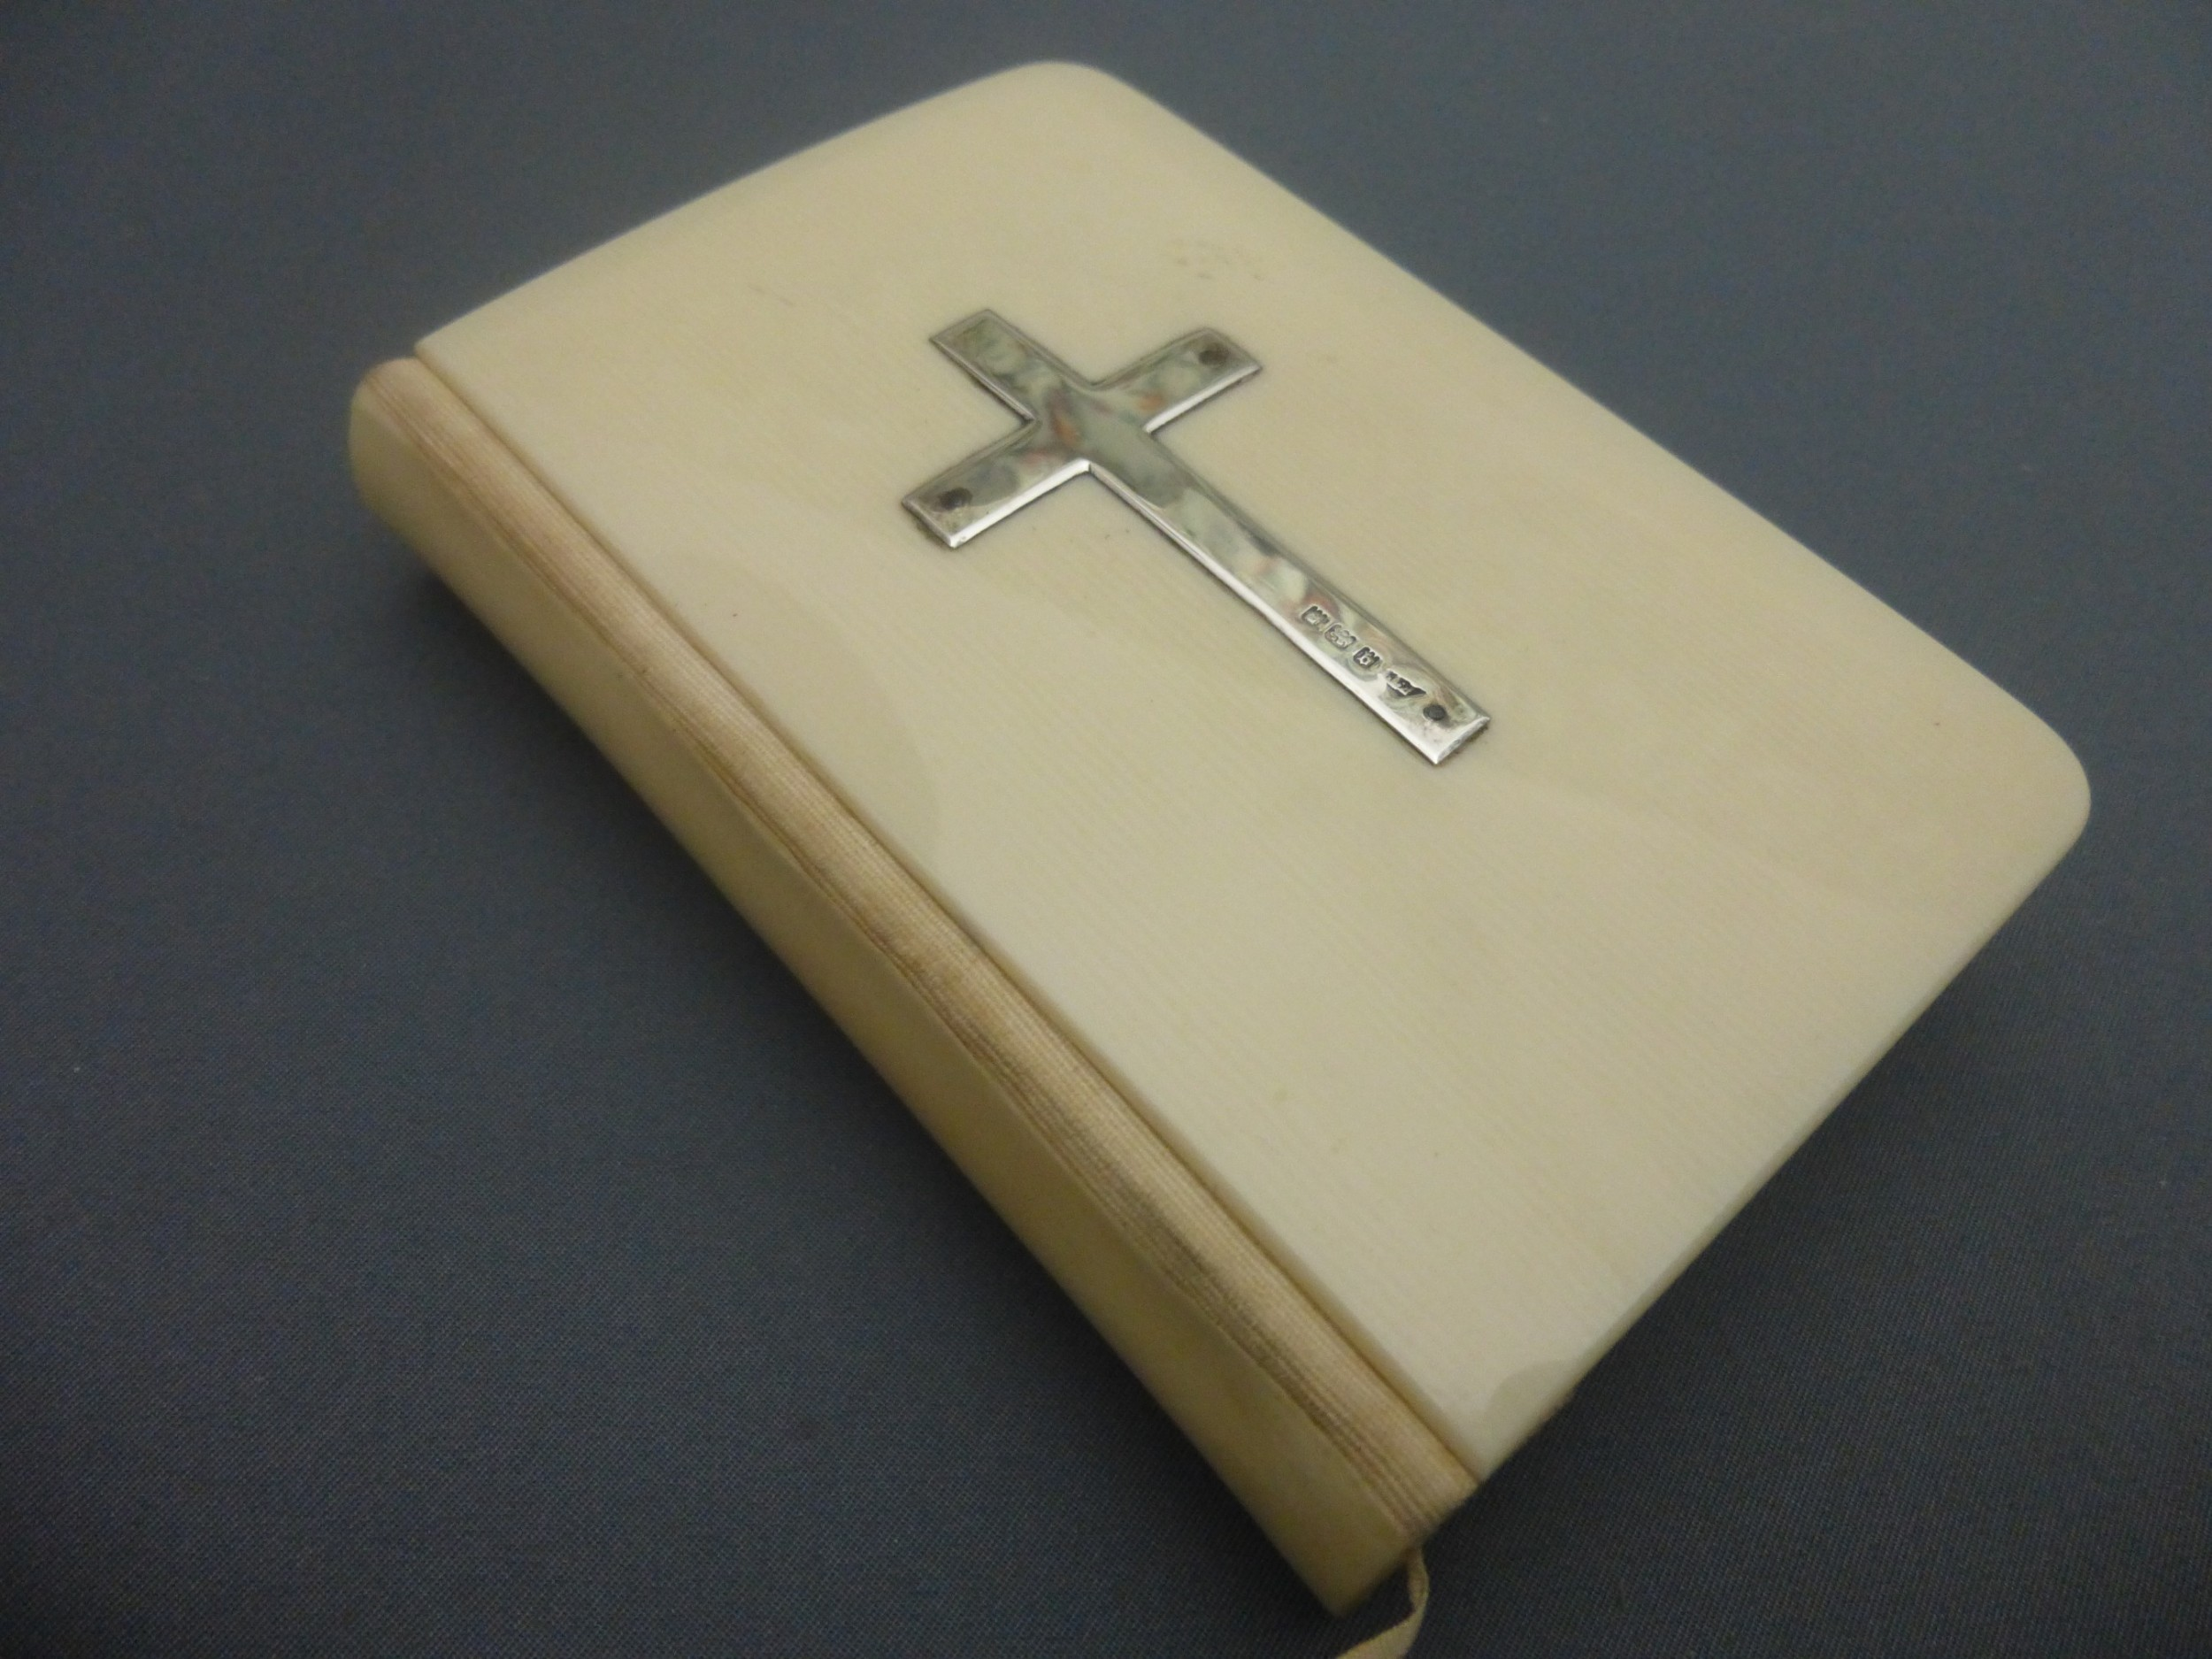 ivorine bound book of common prayer set with a silver cross